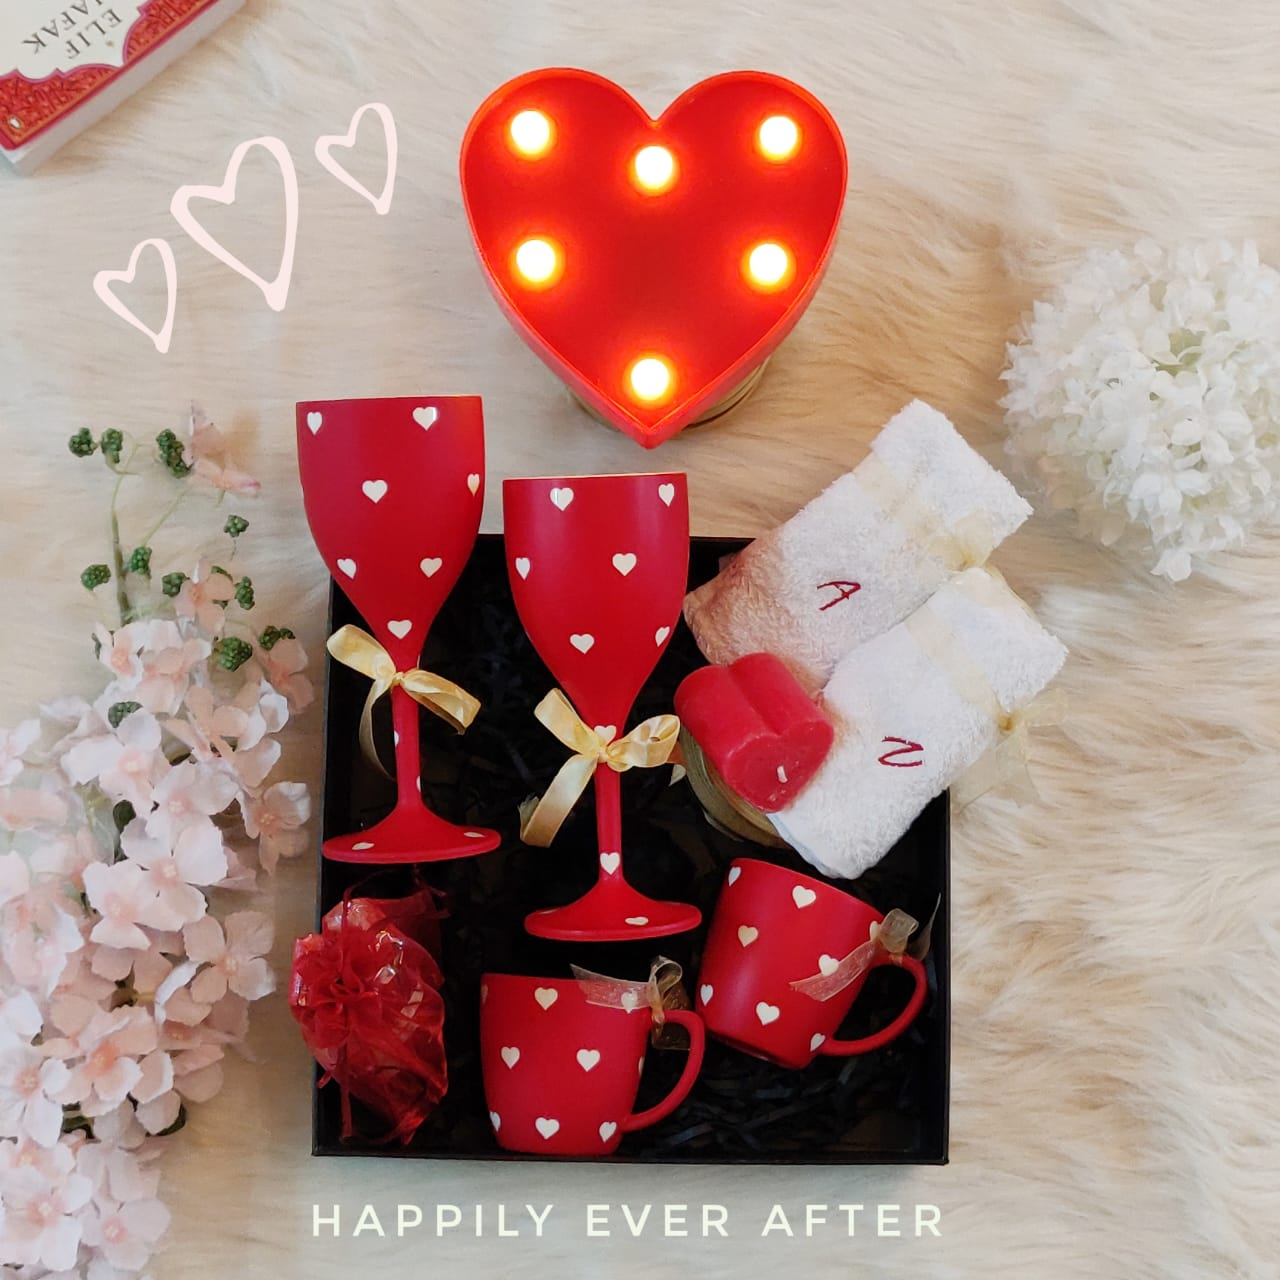 'Happily Ever After' Gift Box